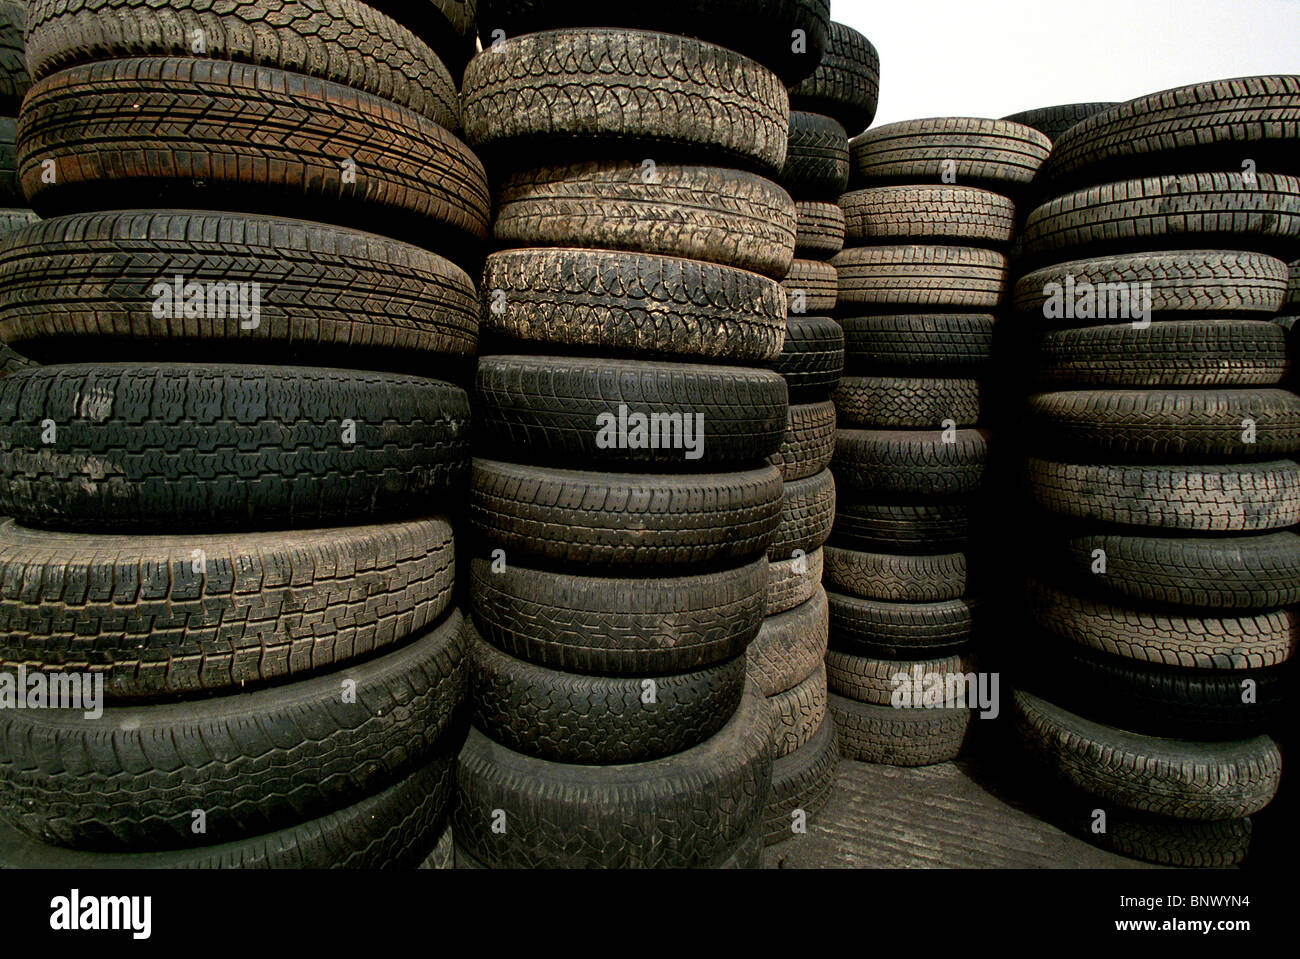 Universal Auctions site at Sandwich,Kent. Thousands of Tyres are lined up to sell by the Salvage Dealers, Universal - Stock Image